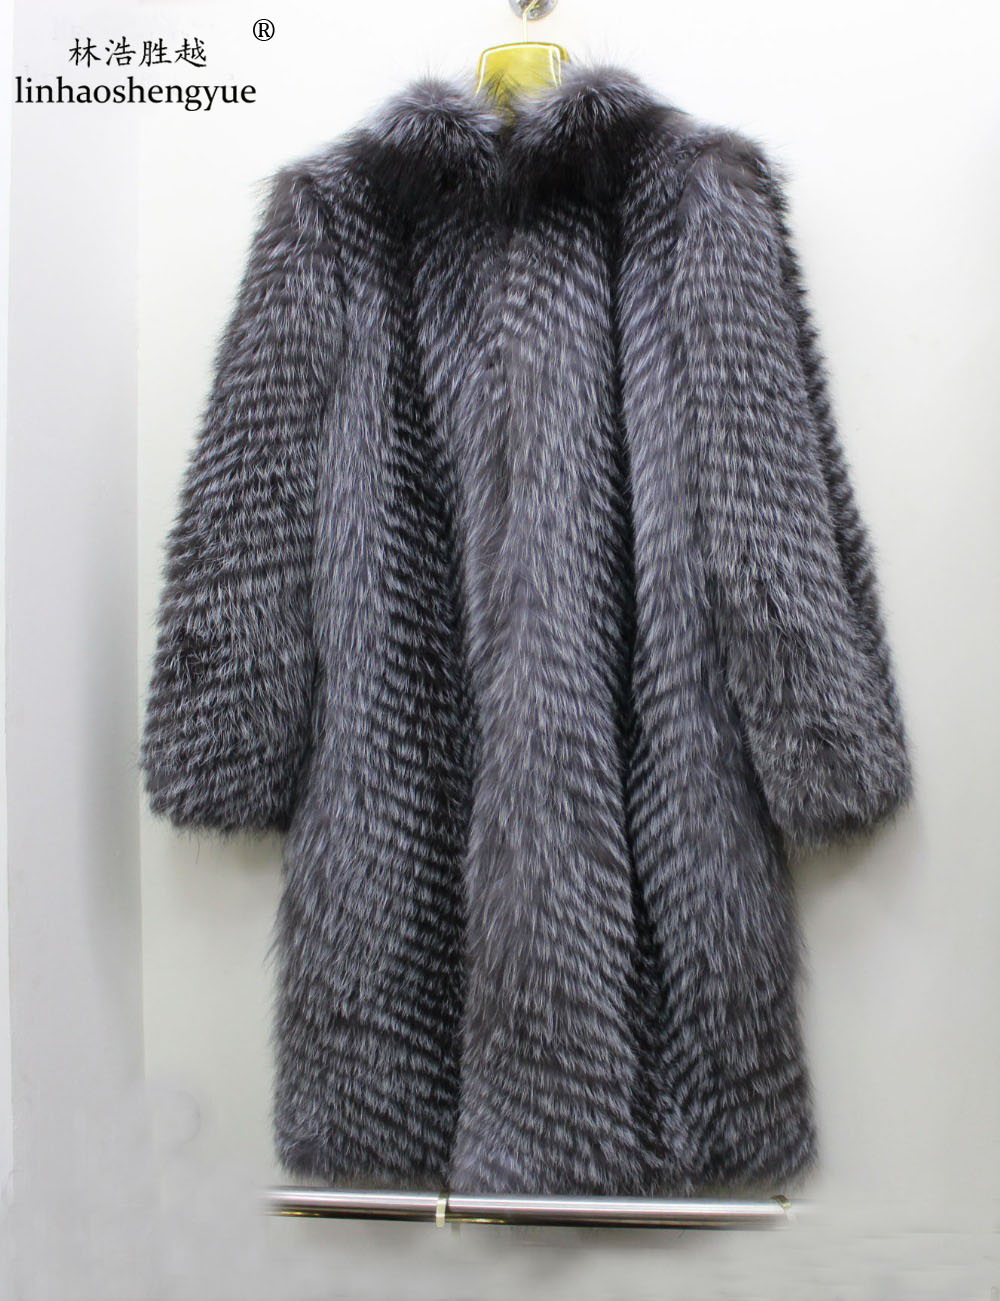 Linhaoshengyue 110CM long real silver fox fur coat with hood